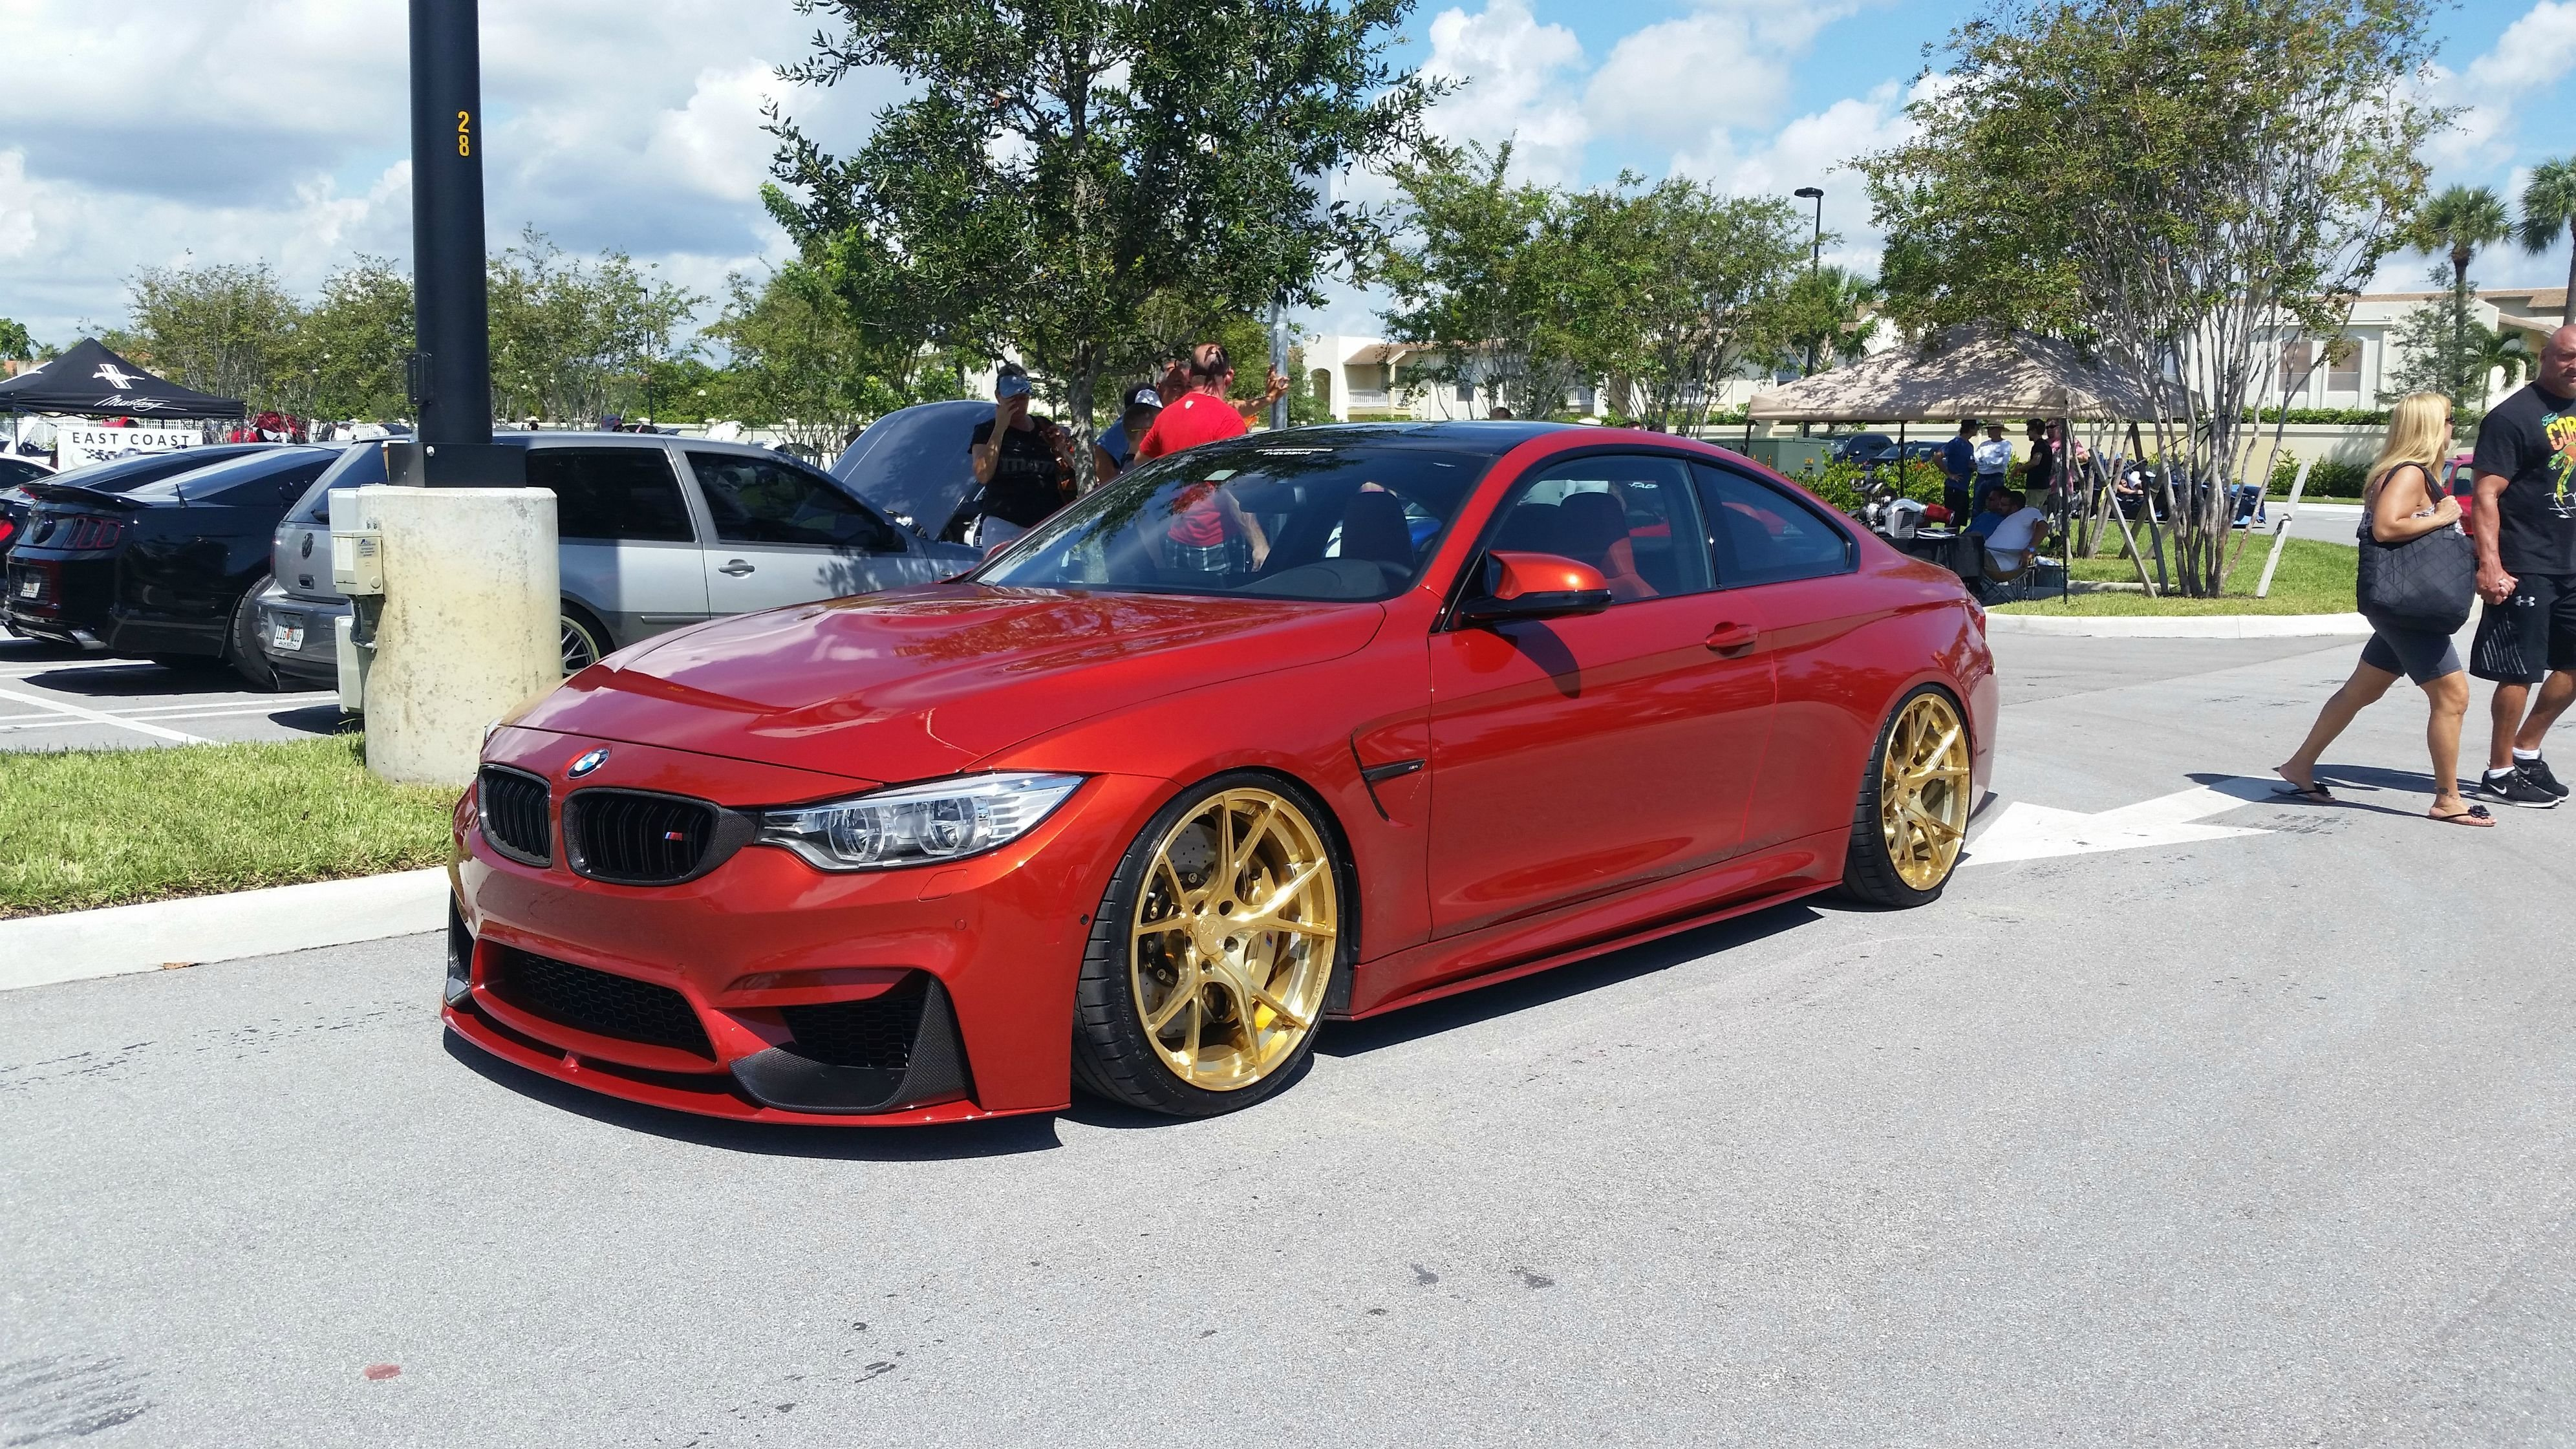 Latest Oc Bmw M4 Gold Velos Rims Album In Comments 5312X2988 Free Download